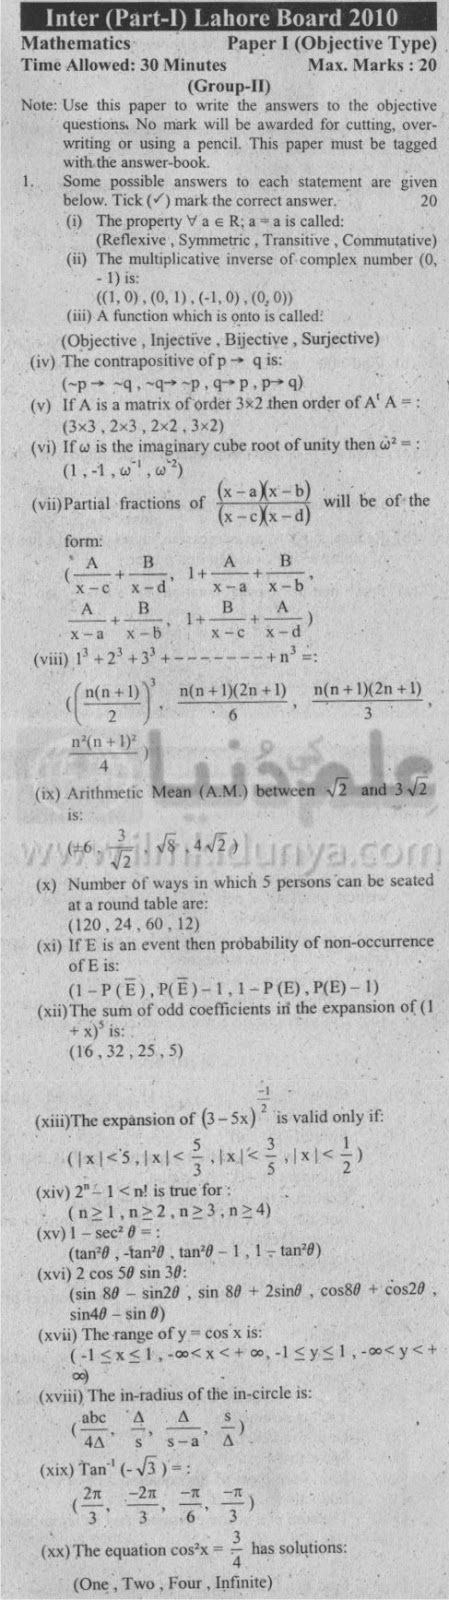 Inter Part I Mathematics Objective Paper I Group II Lahore Board 2010